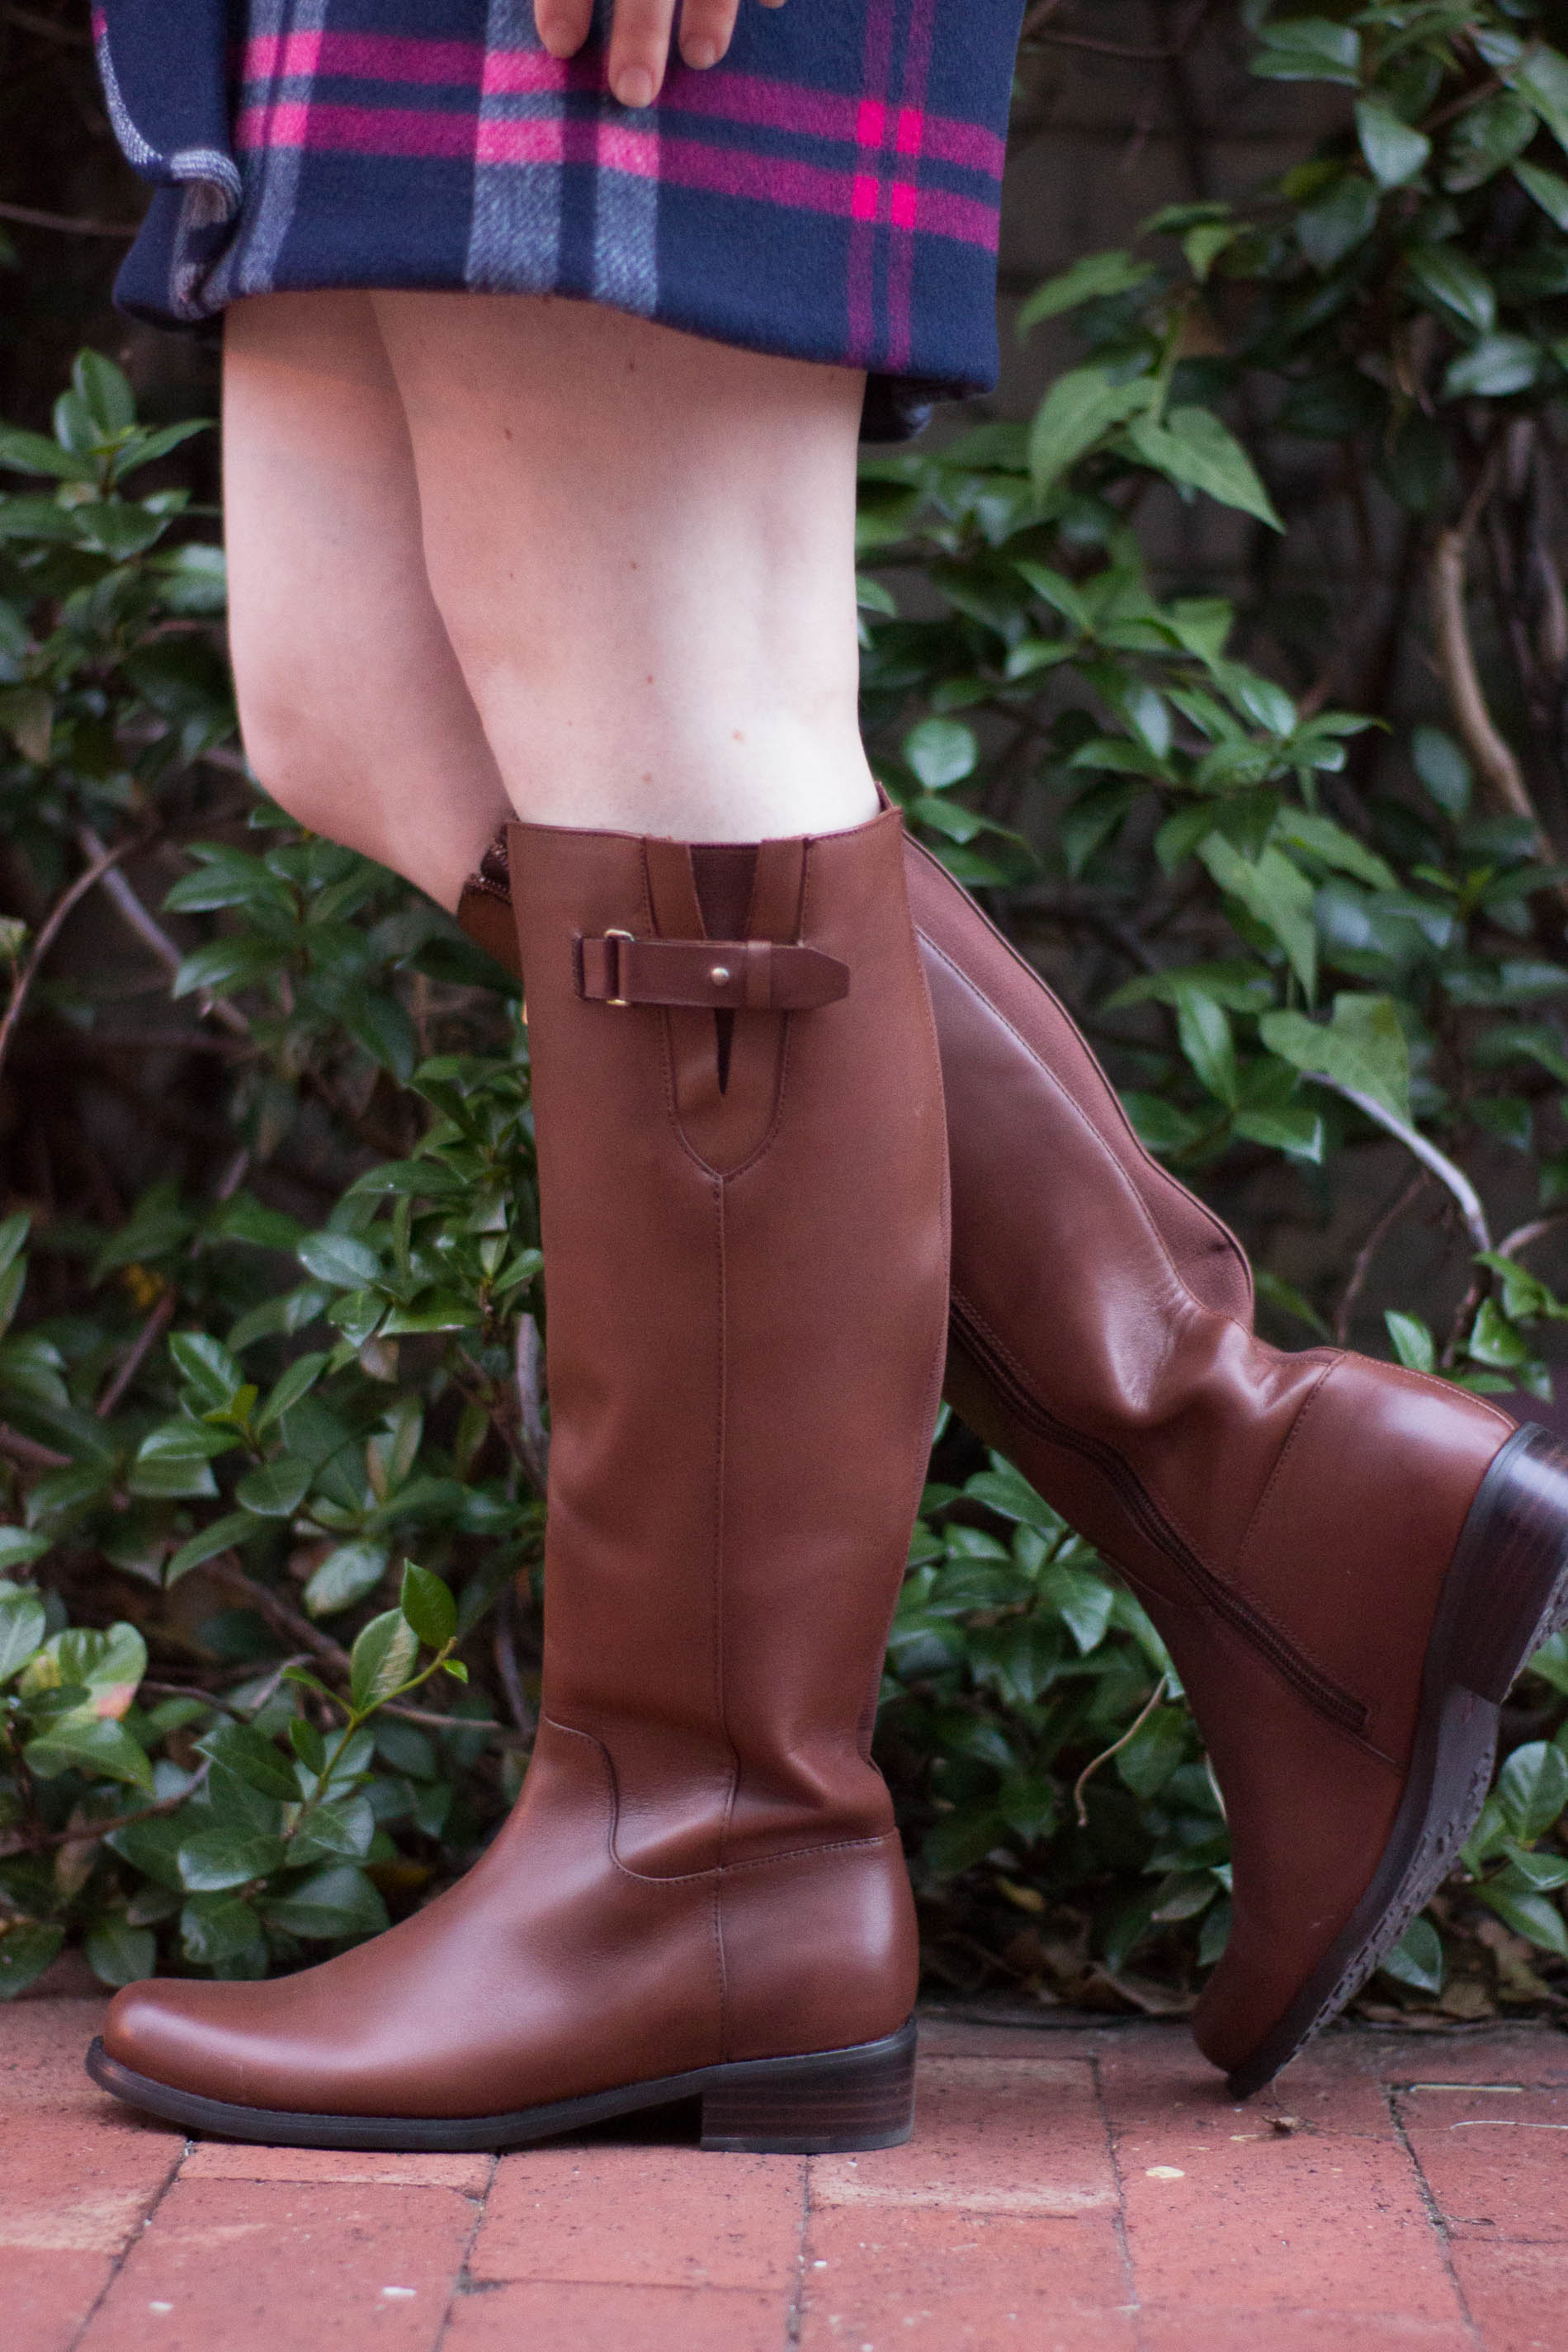 The 5 Days to Holiday Savings Challenge | Something Good, @danaerinw , blondo waterproof riding boot, brown riding boot, fall shoes, boots